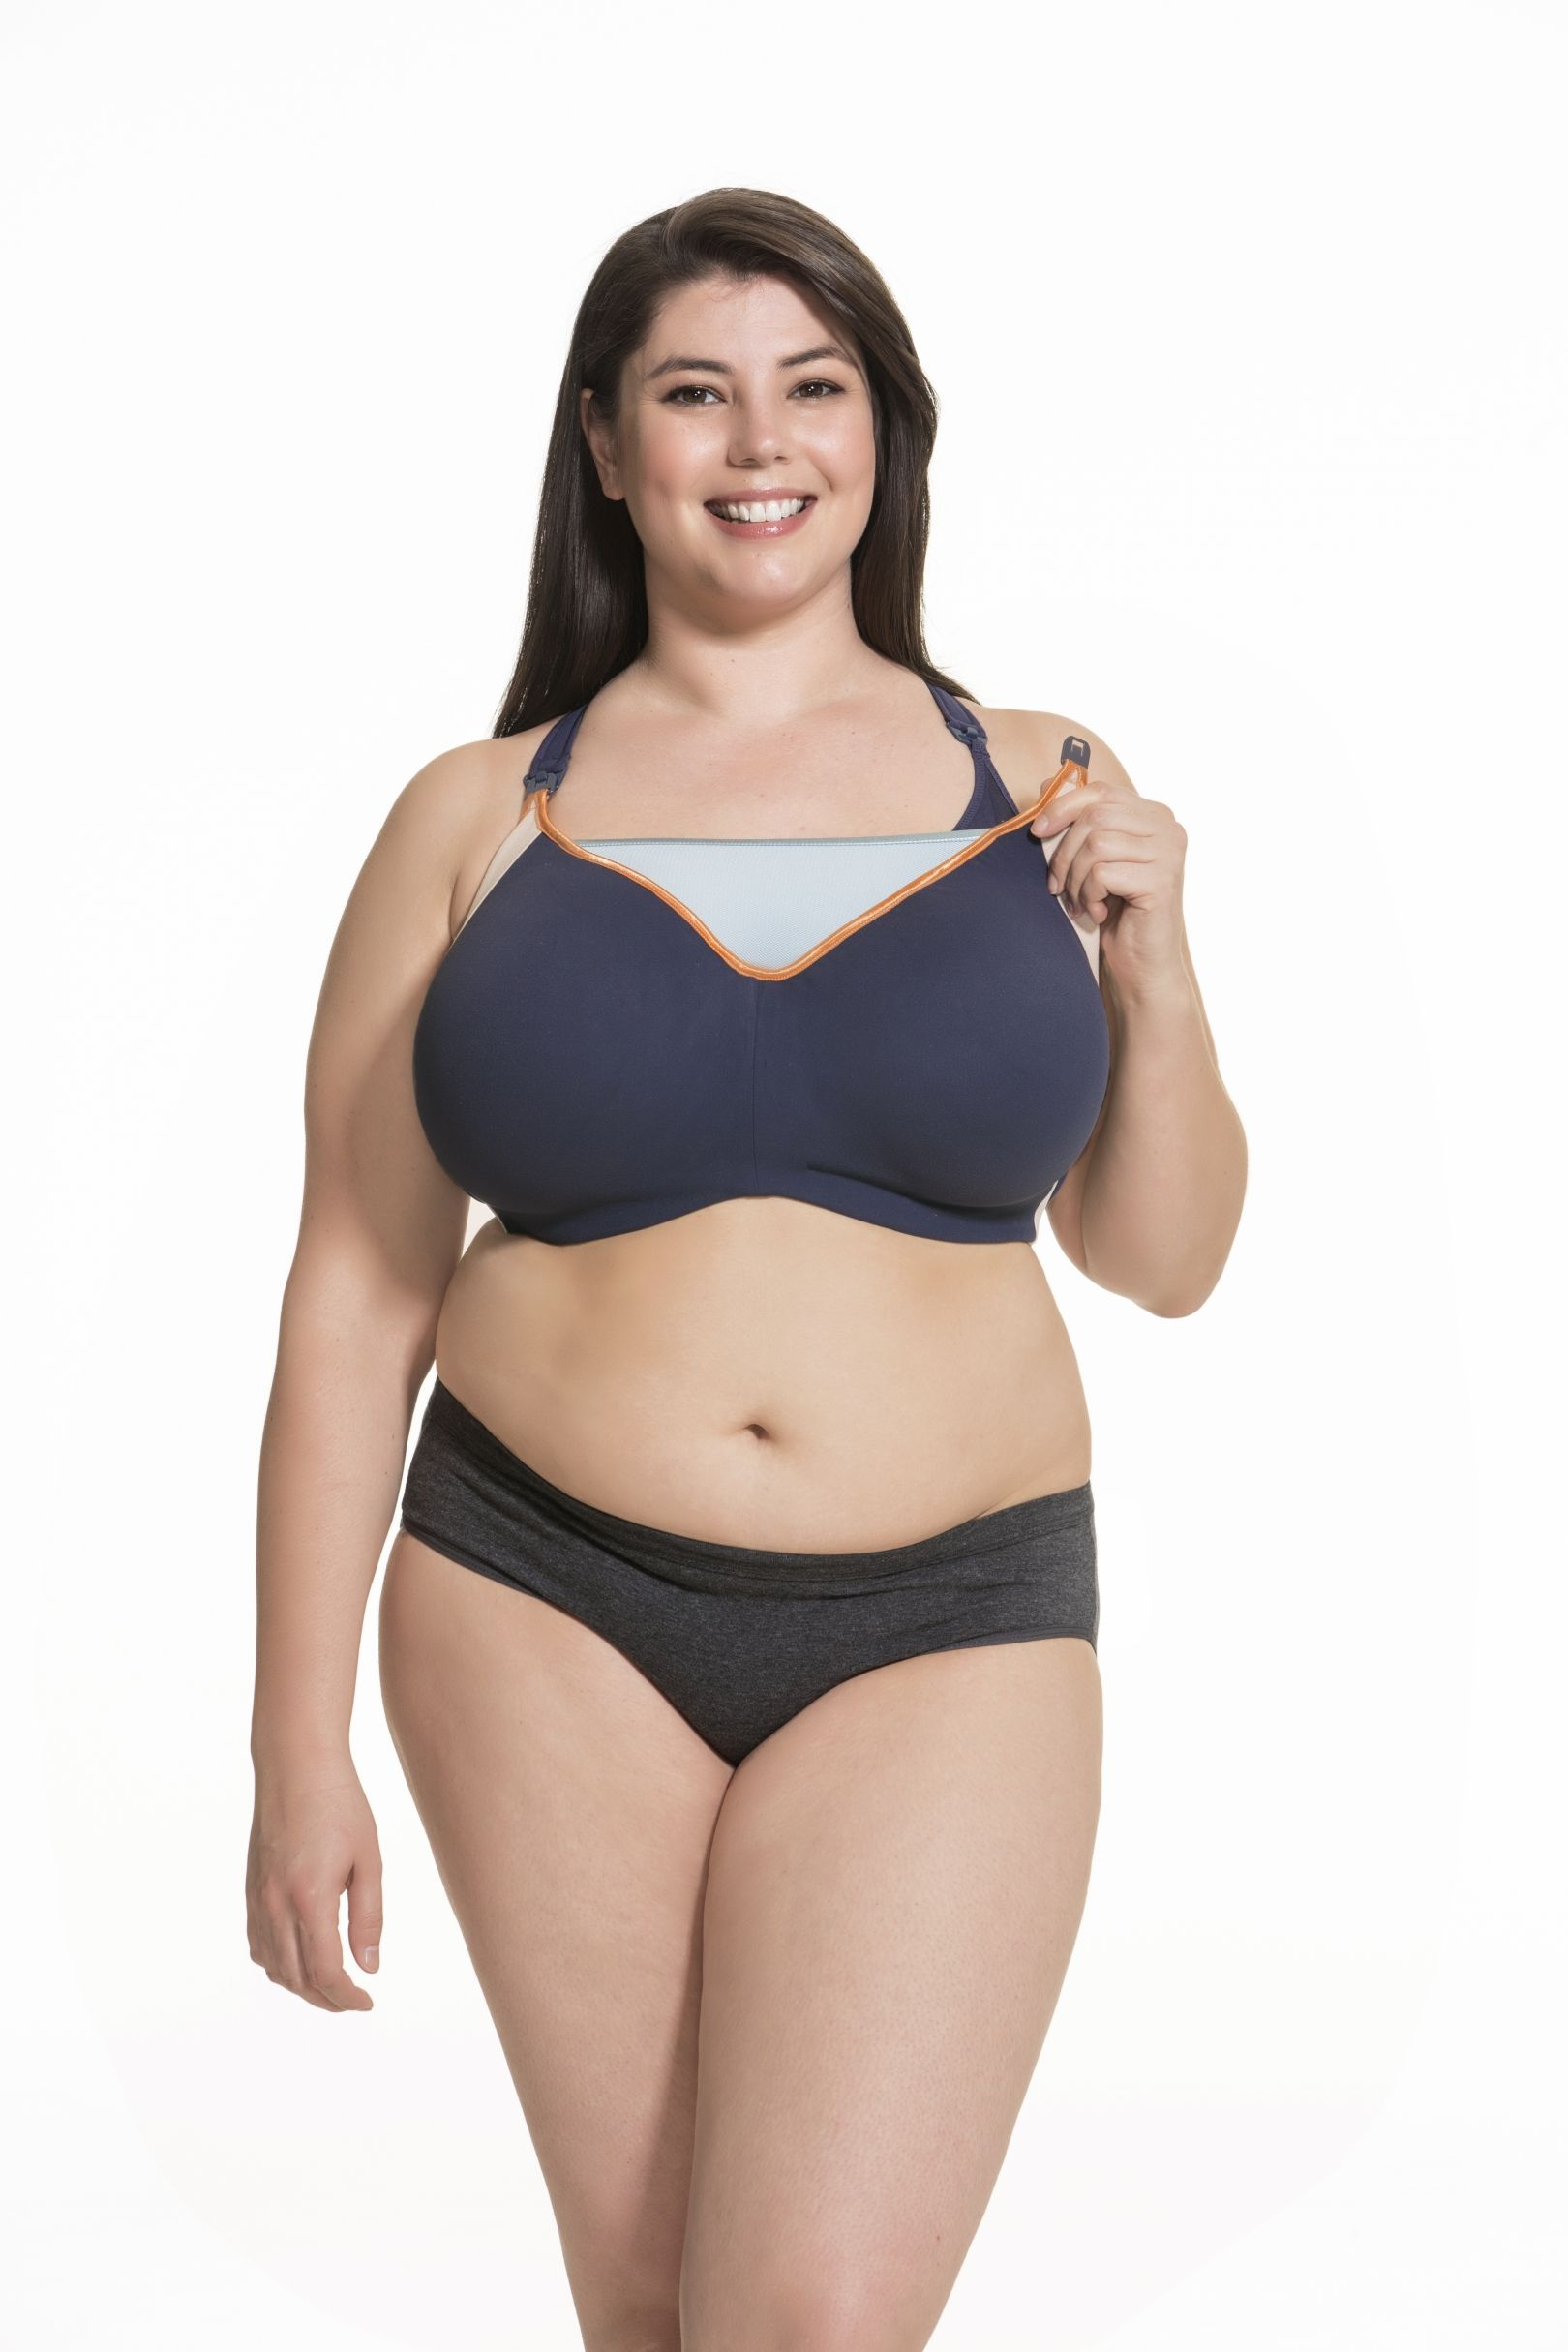 b6f9f54be8bed Zest Flexi Wire High Impact Sports Bra. Zest Flexi Wire High Impact Sports  Bra Cake Maternity ...